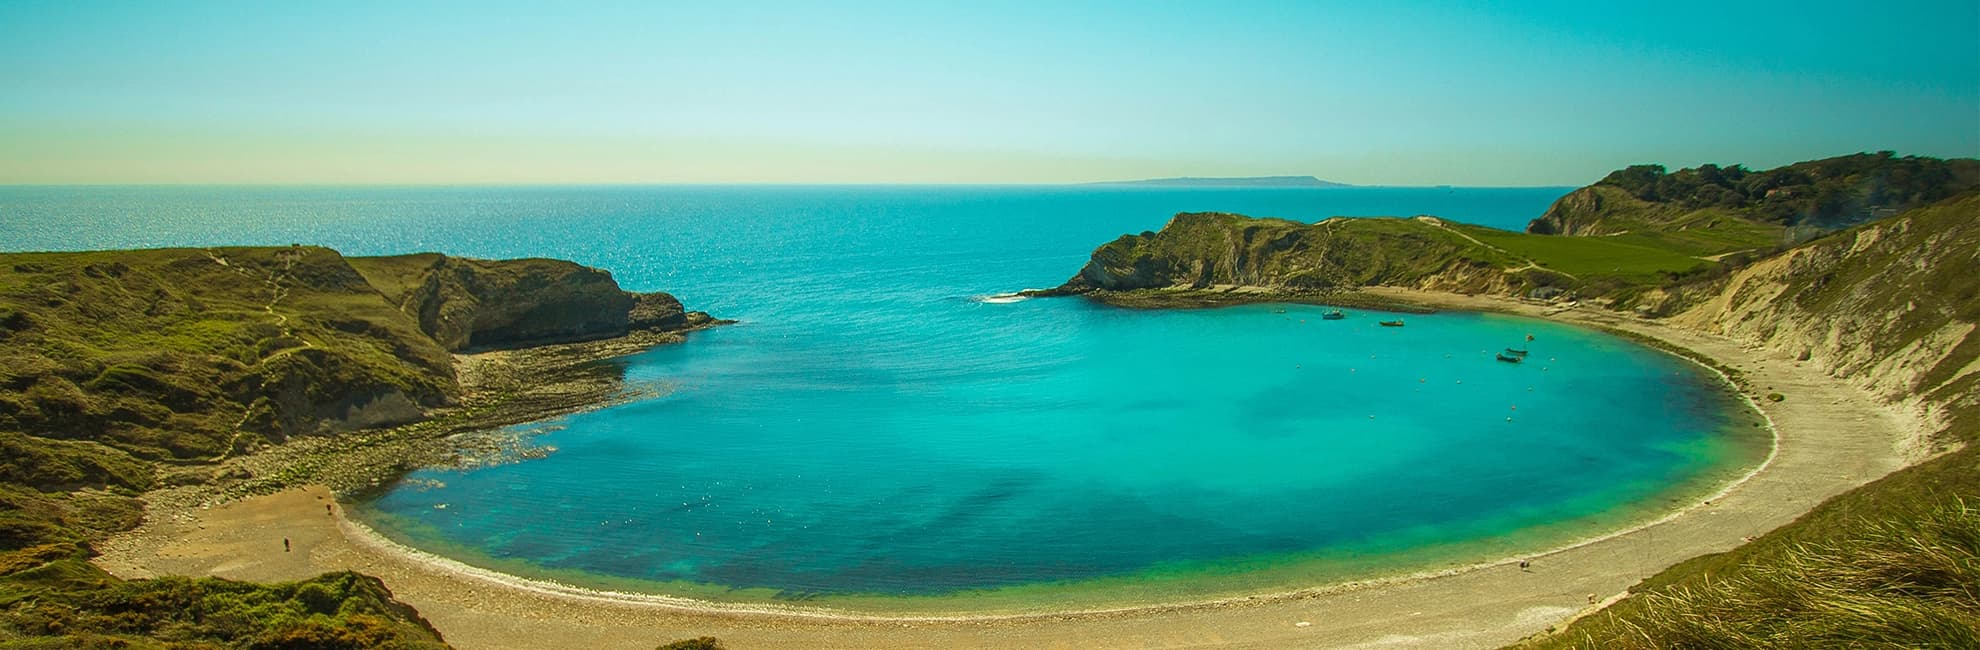 Looking out to see over the beautiful blue waters of Lulworth Cove in Dorset